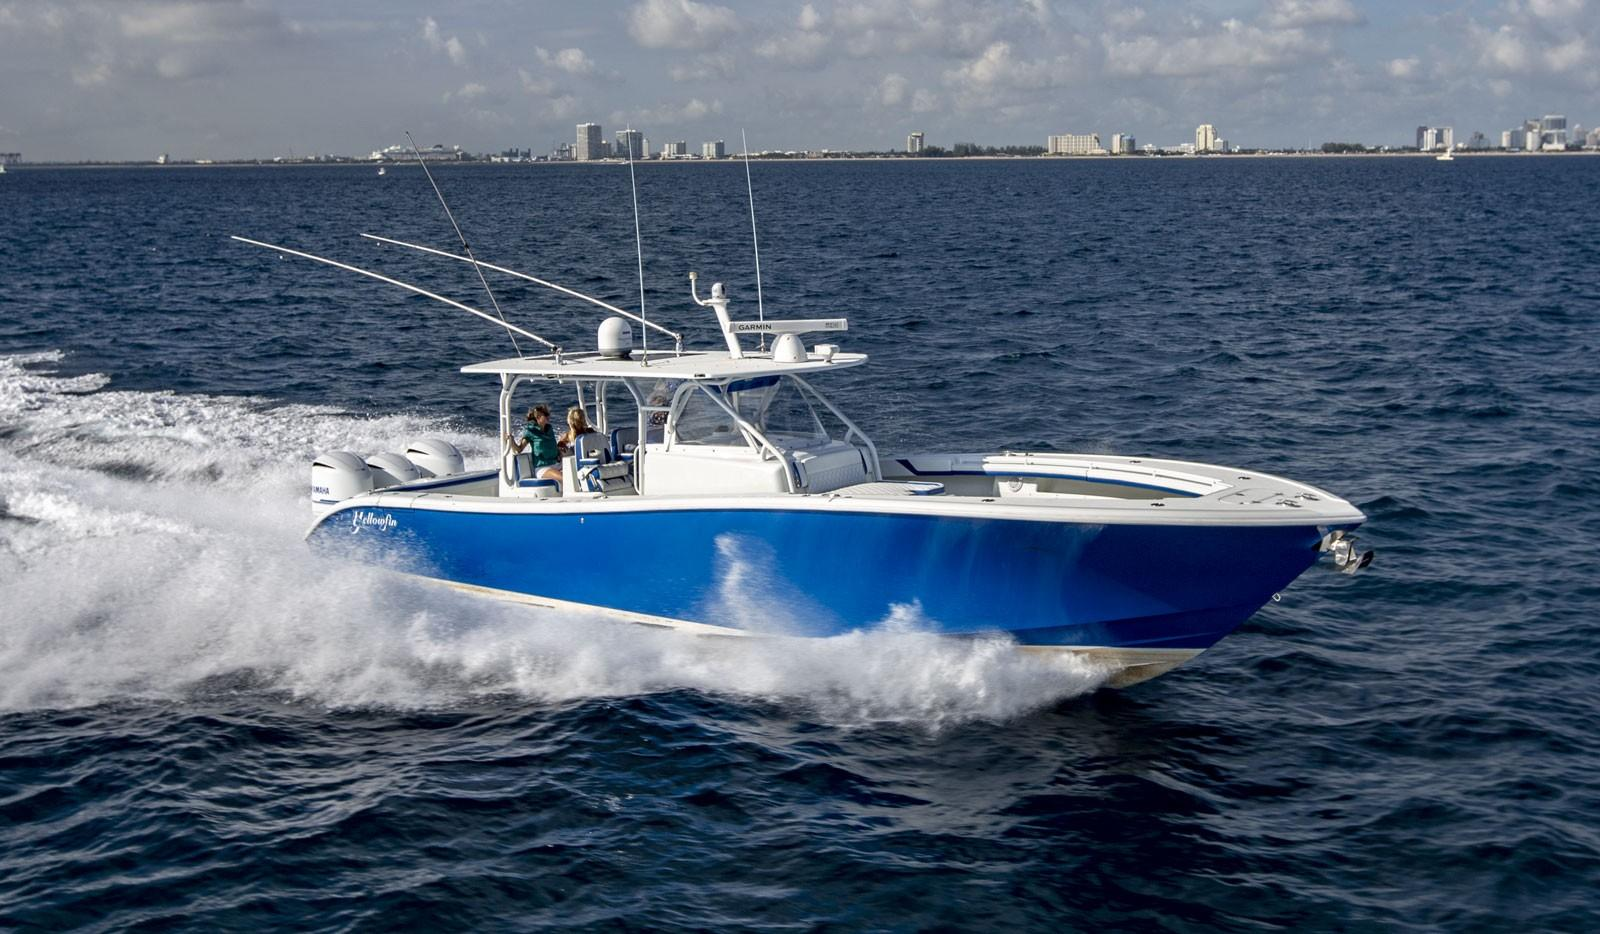 42 Yellowfin Rough Book 2015 Myrtle Beach Denison Yacht Sales